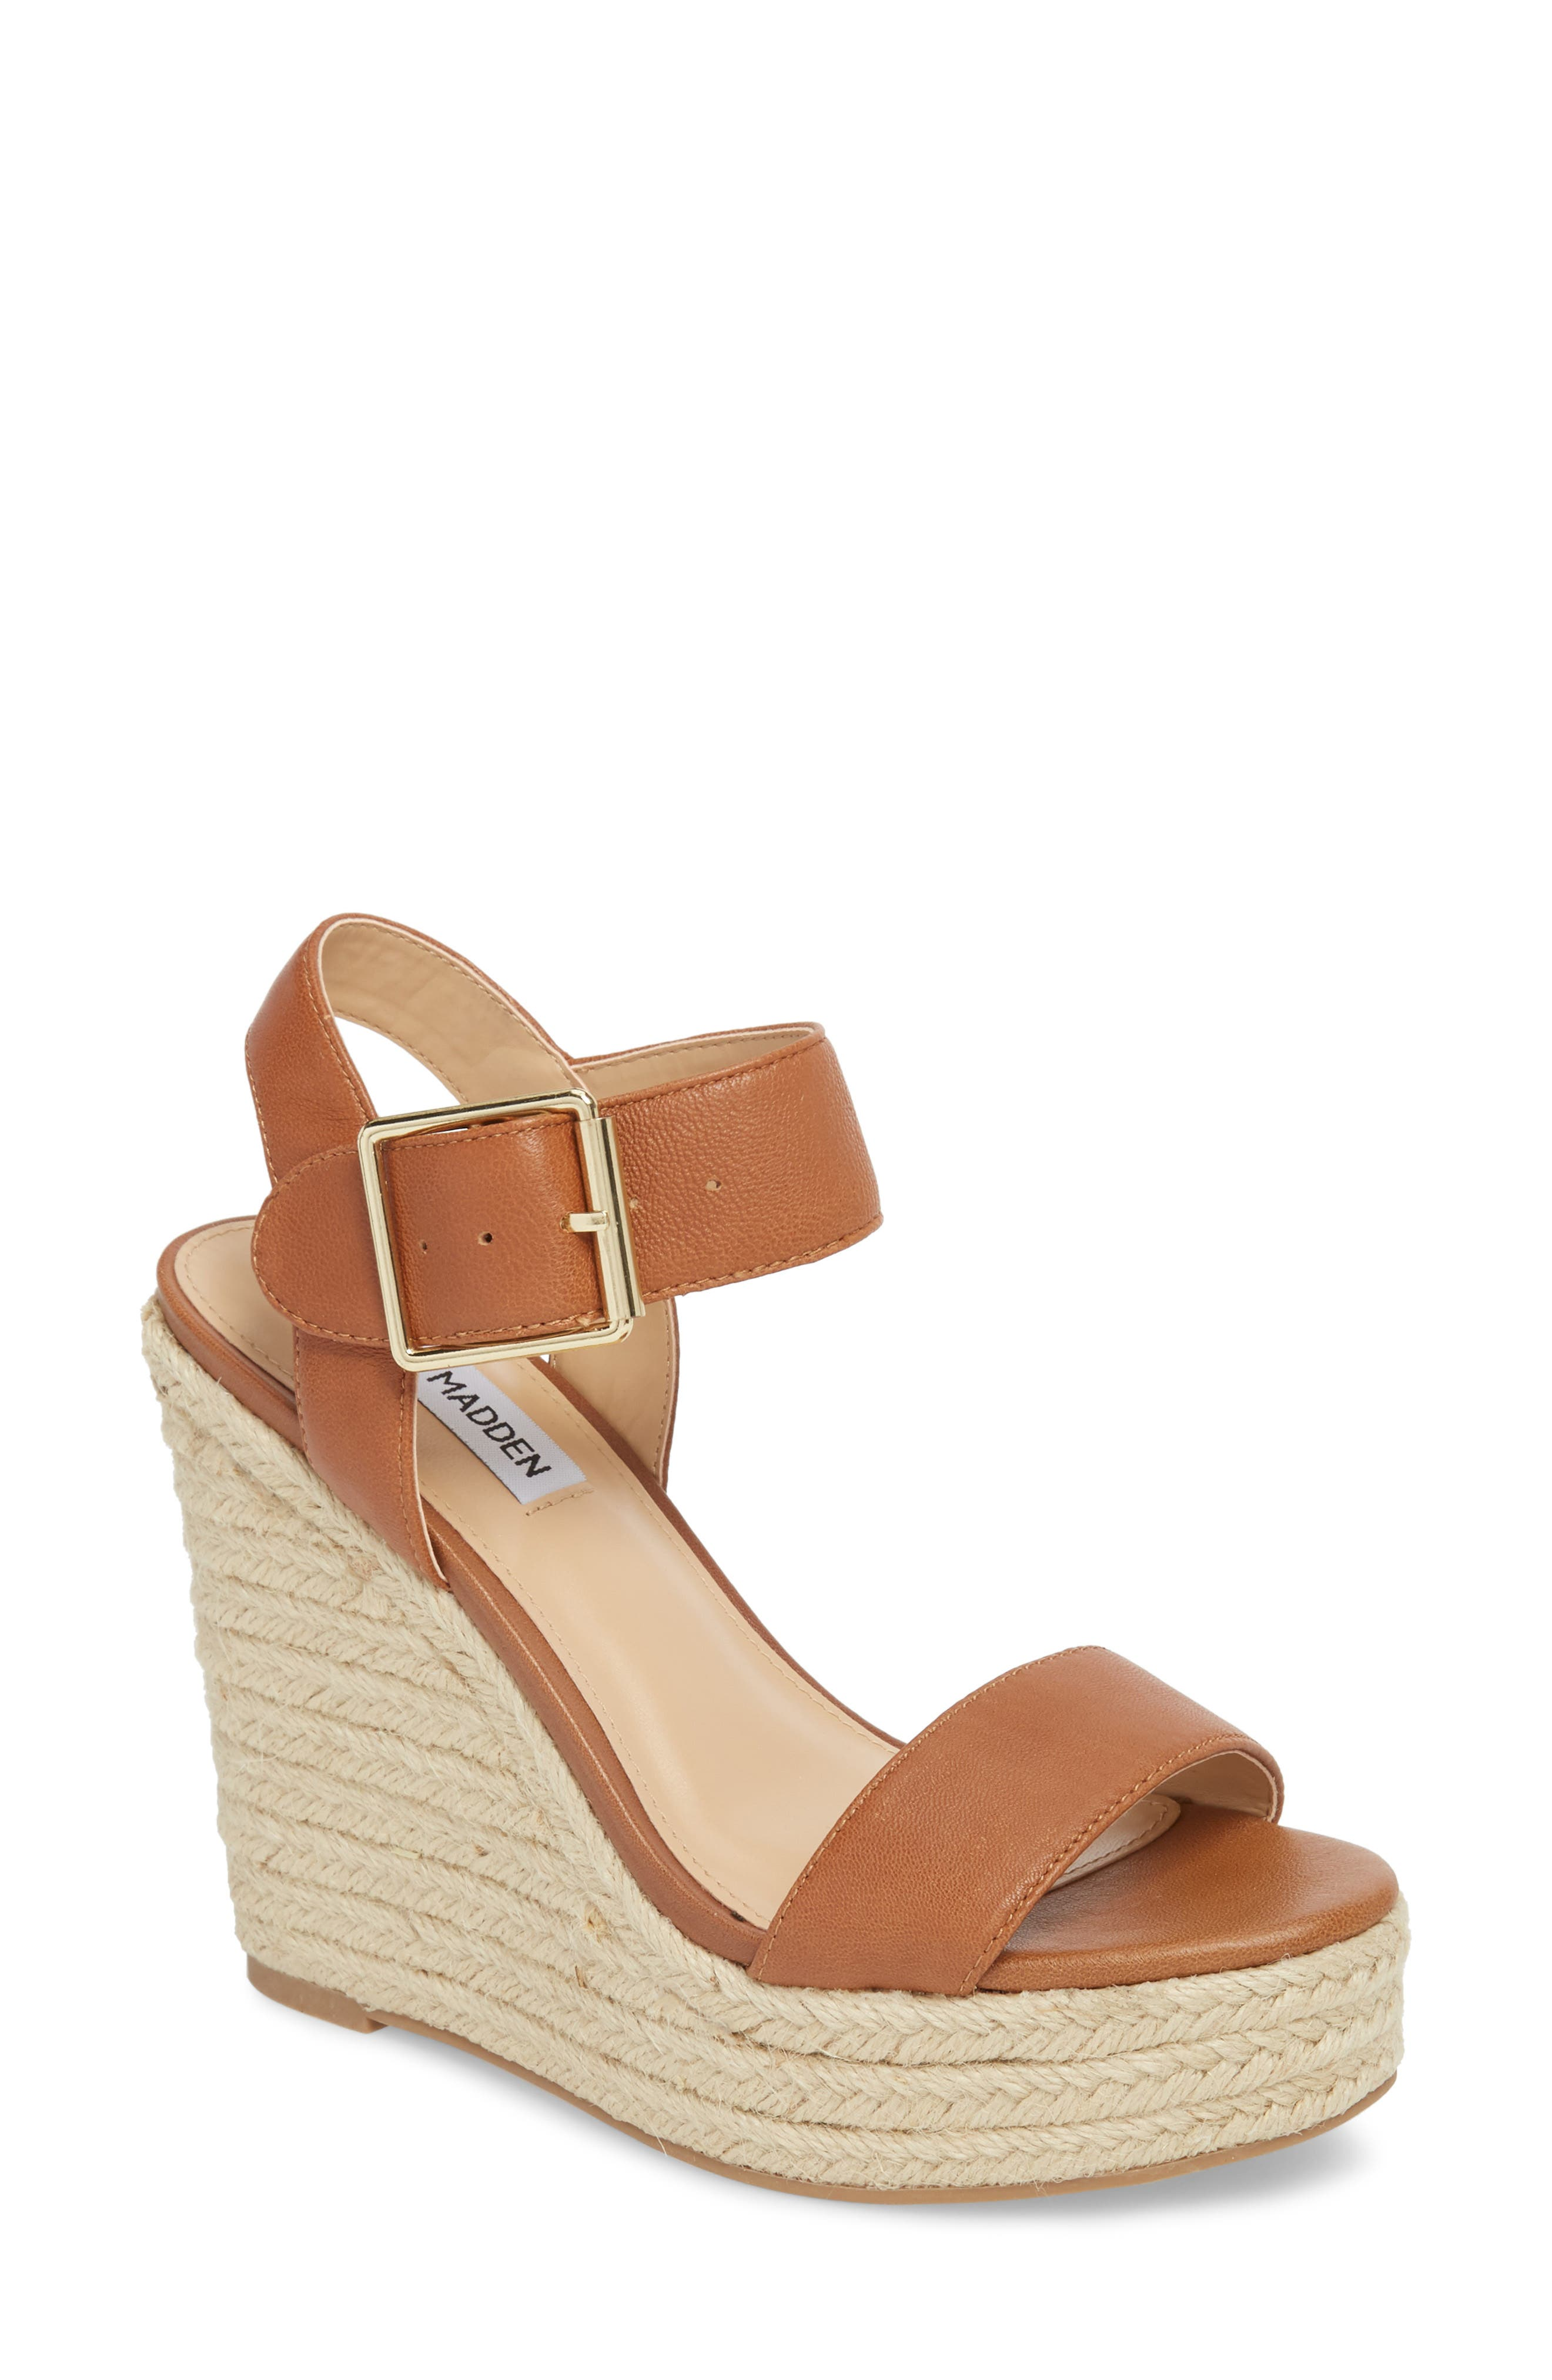 Topshop Tan Leather Wedges Sandals Size 7